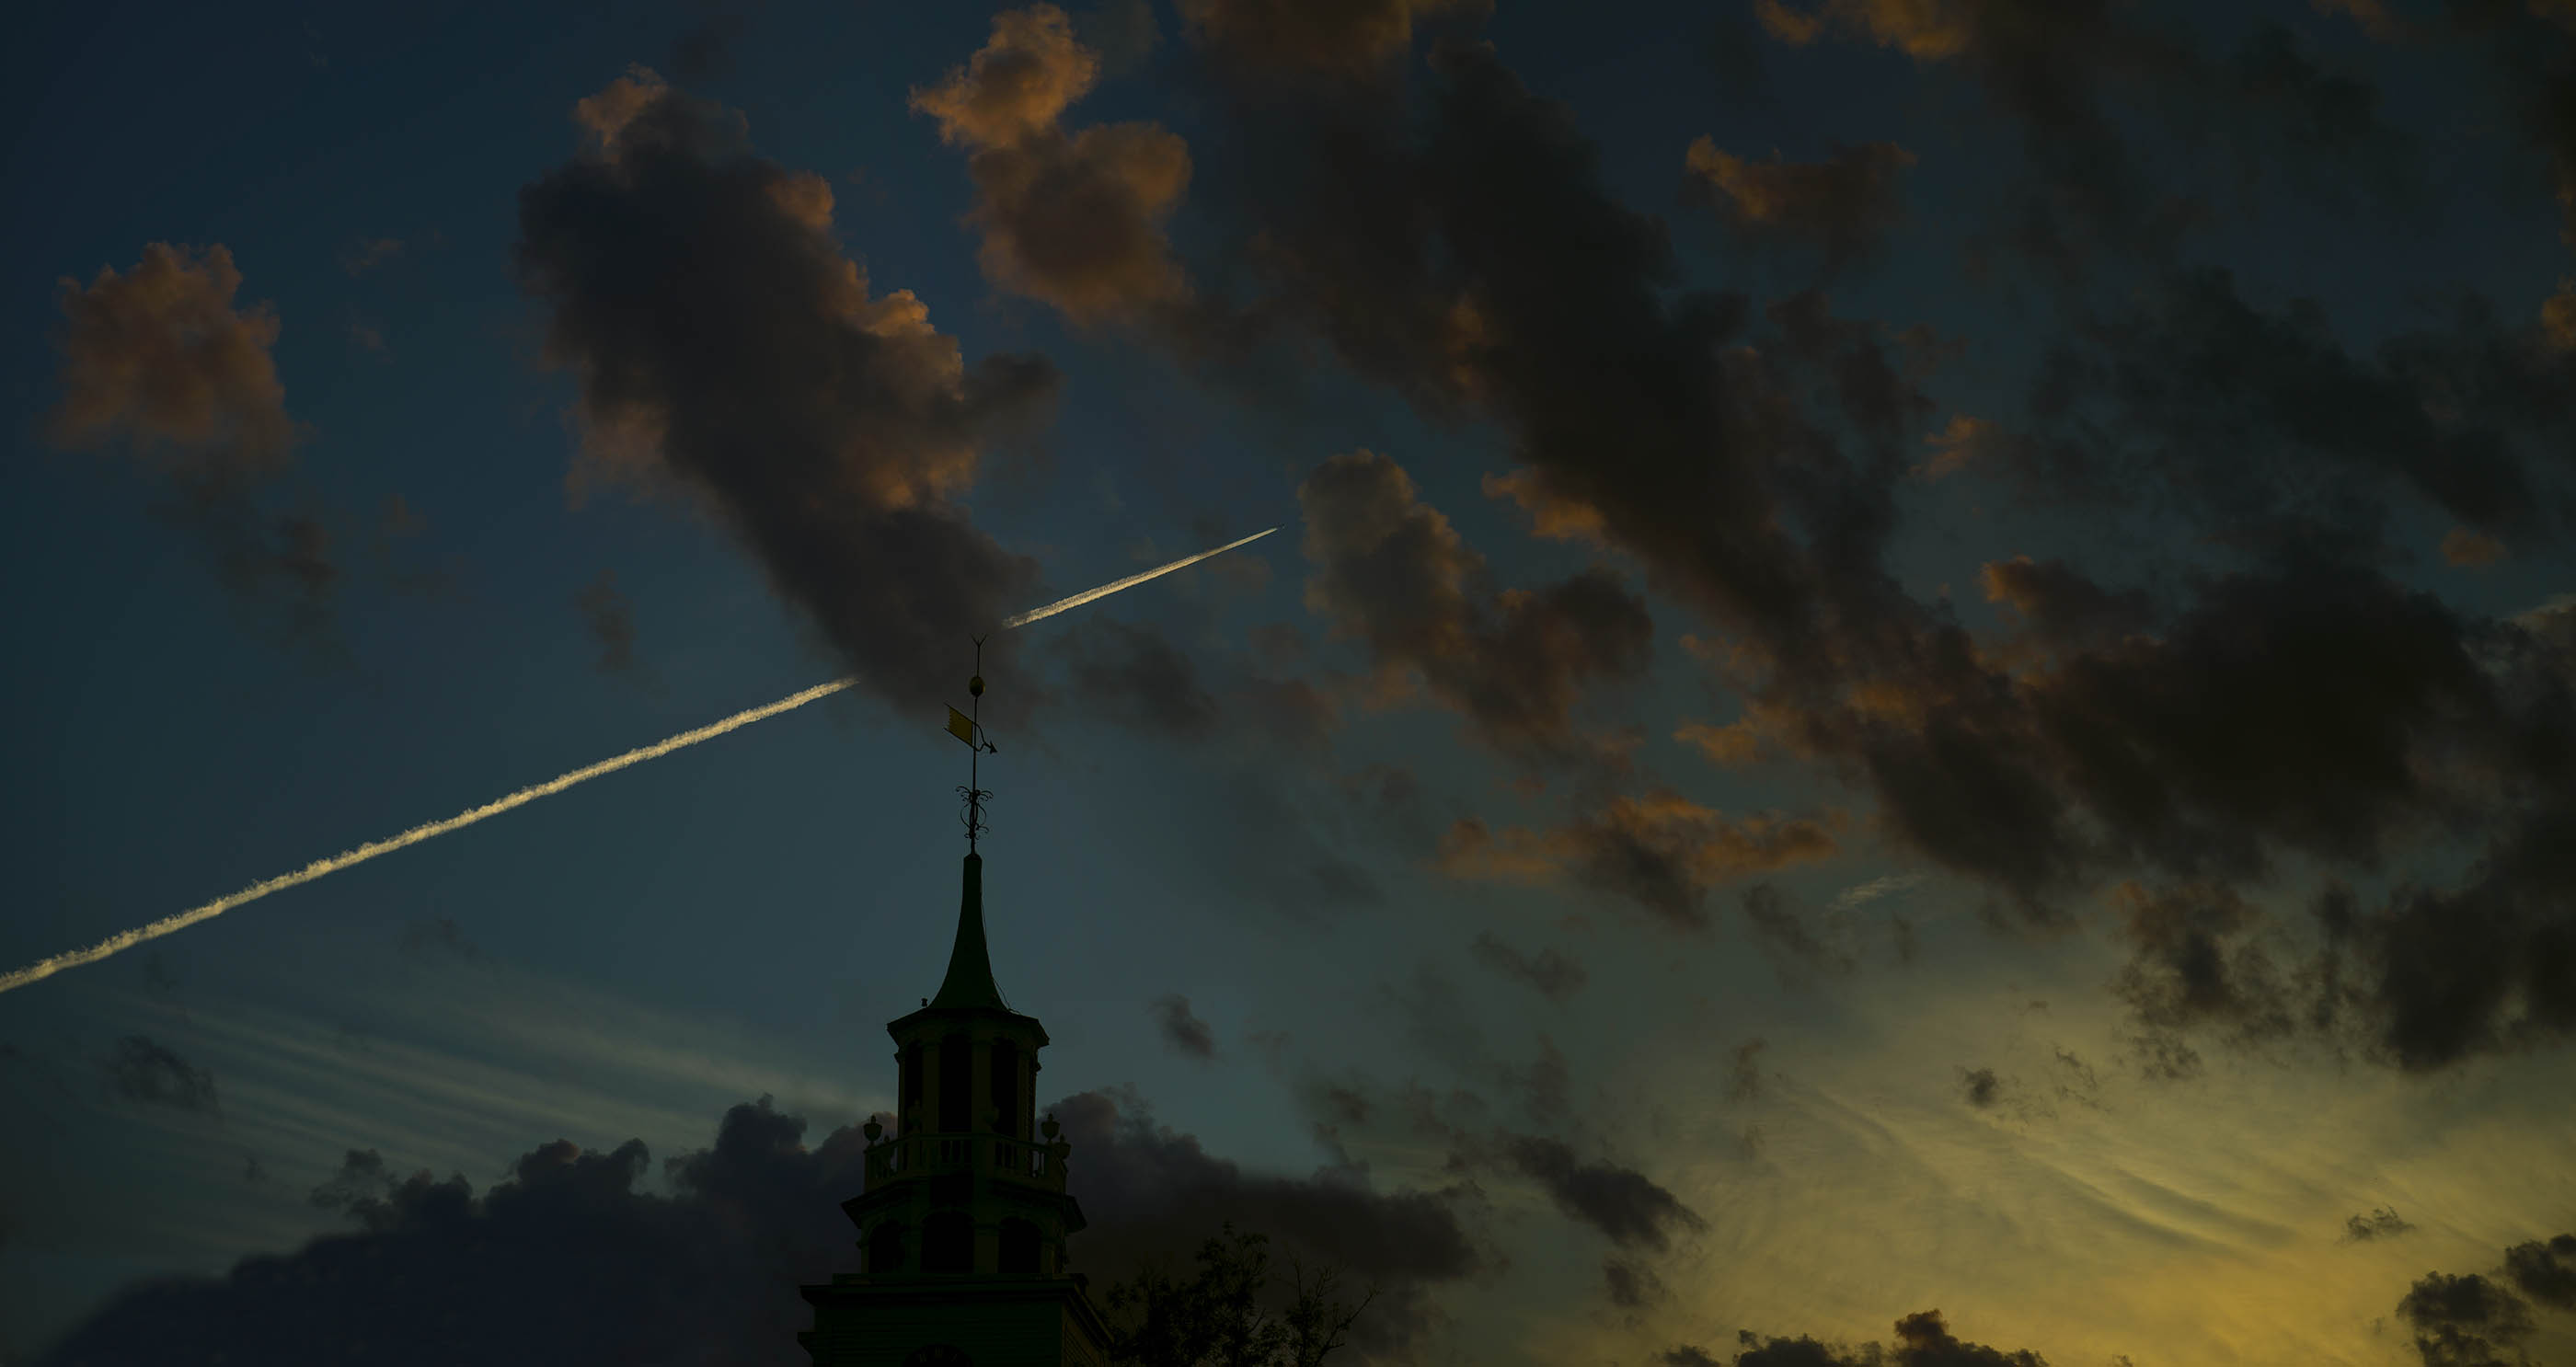 Church Spire clouds sunset and Contrail Sheffield MA Wick Beavers Best NYC and LA Fine Art Sky Photographer